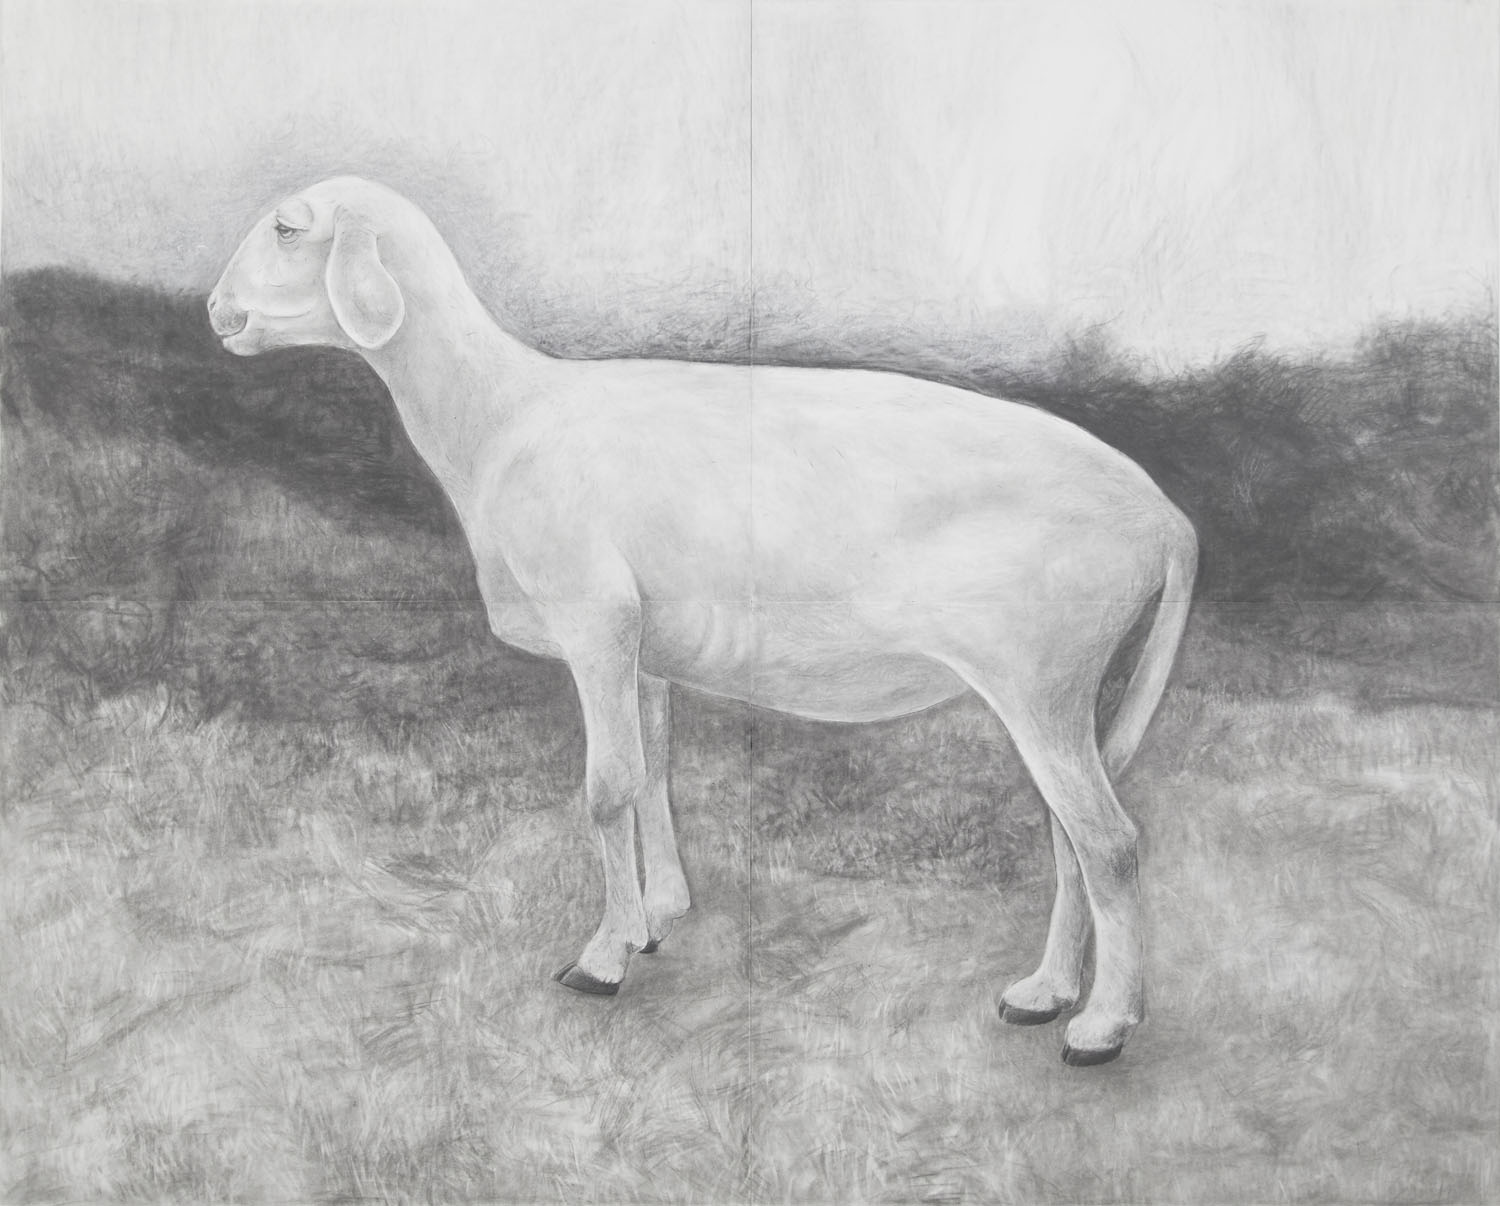 White Goat Grandmother in Landscape